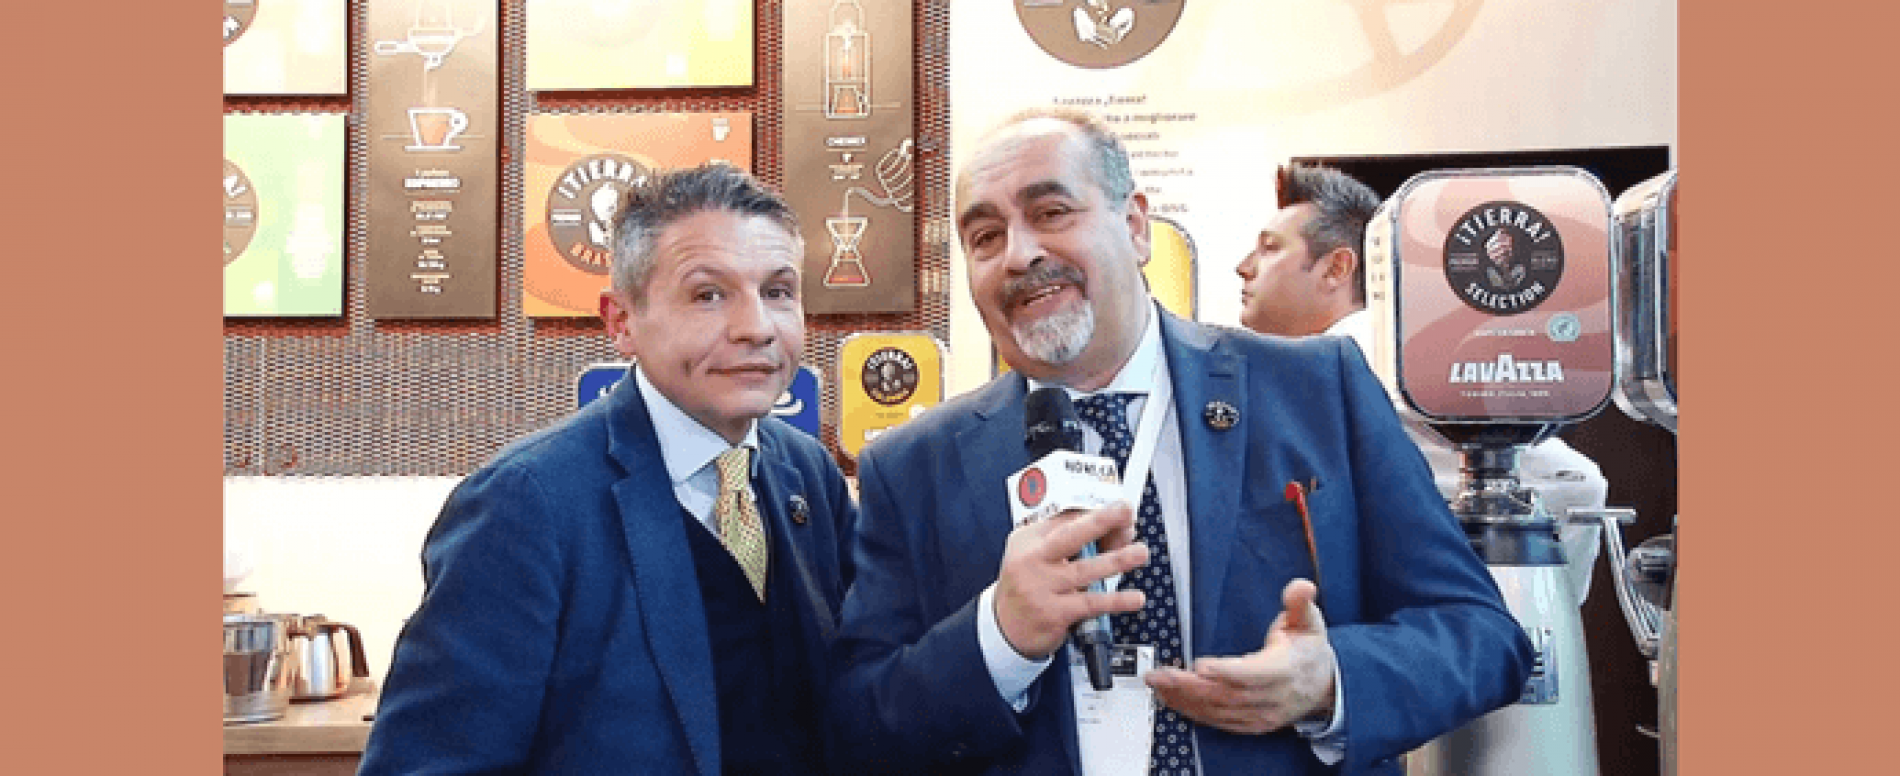 HorecaTv.it. Intervista a Sigep con Michele Cannone di Lavazza